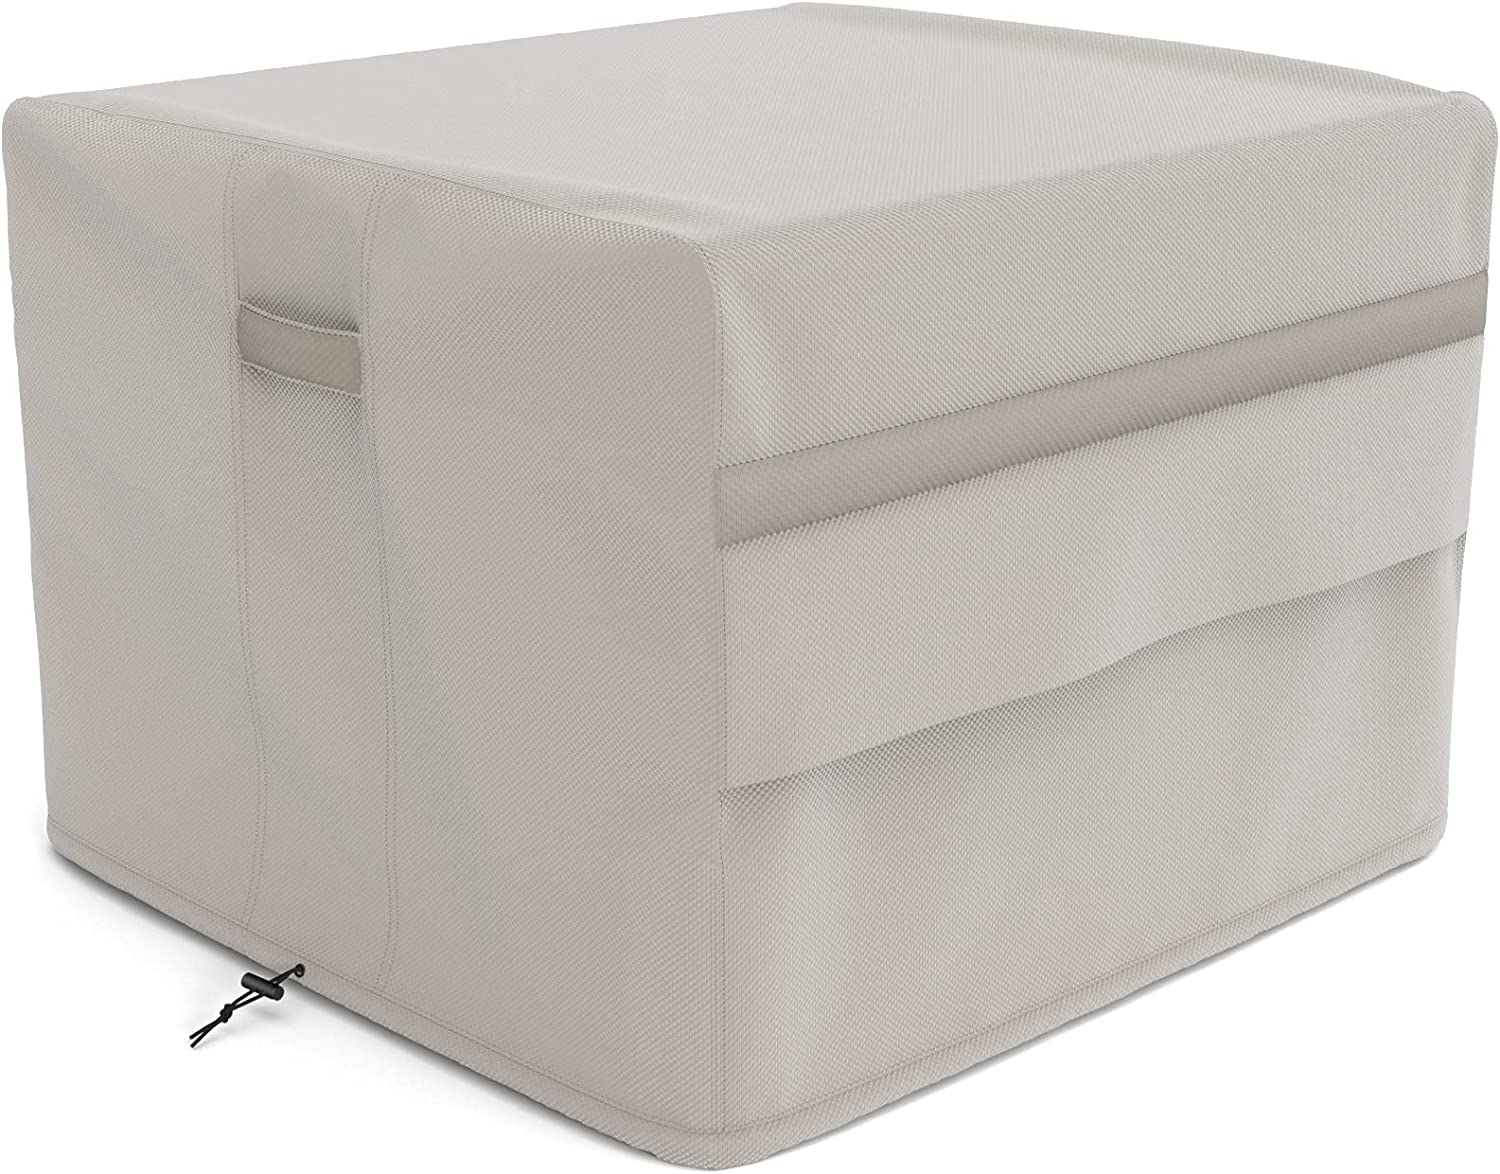 MR. COVER Fire Limited price sale Pit Cover Square Fits Indefinitely for Inch Table 28-32